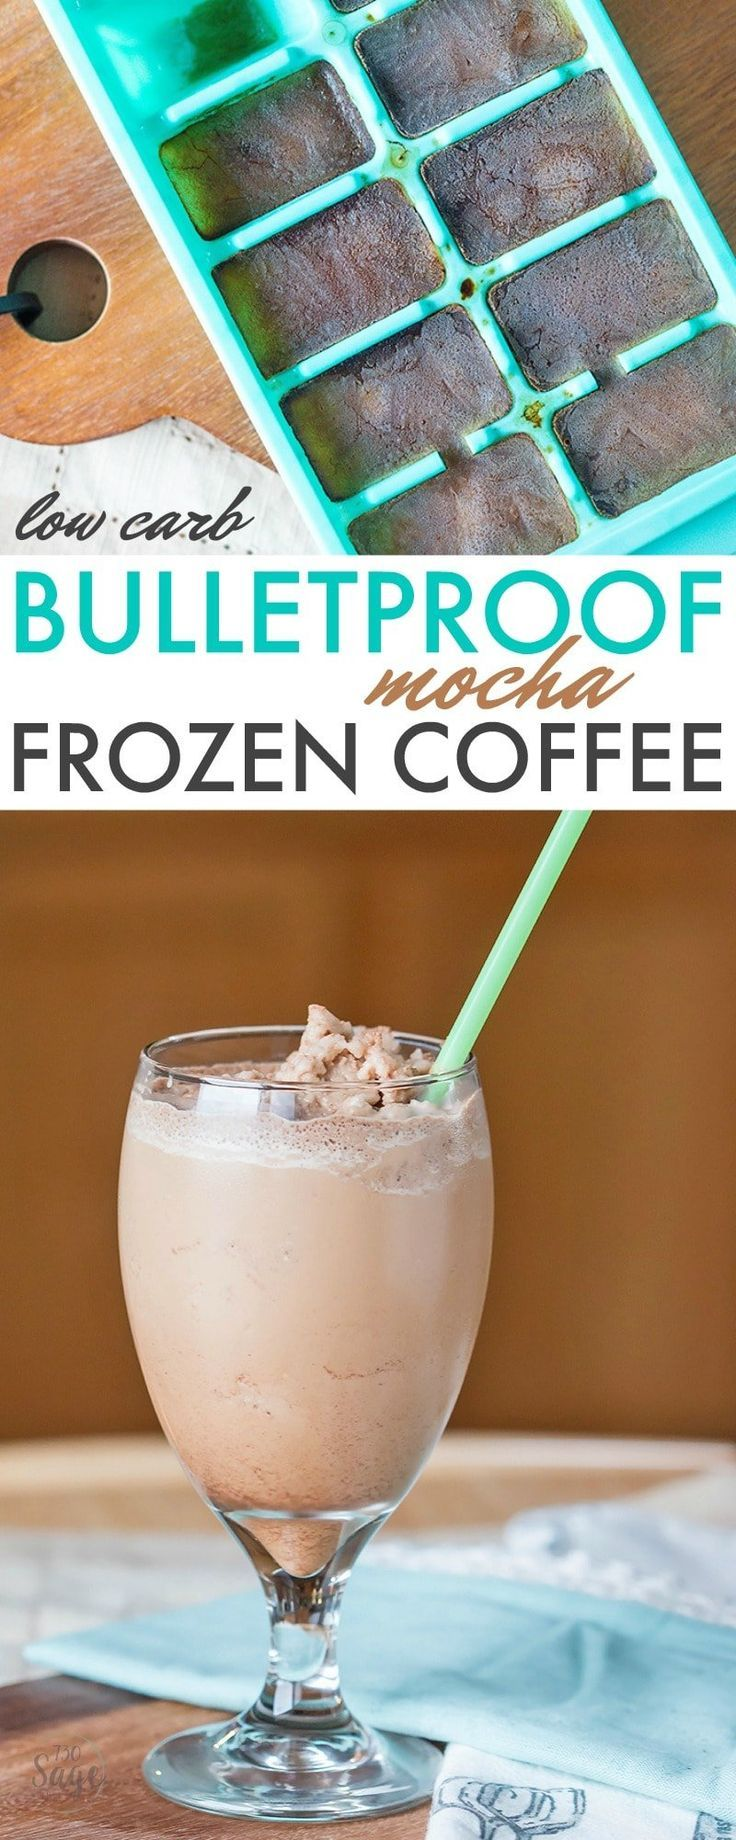 This bulletproof frozen mocha coffee recipe is perfect for low carb or ketogenic...